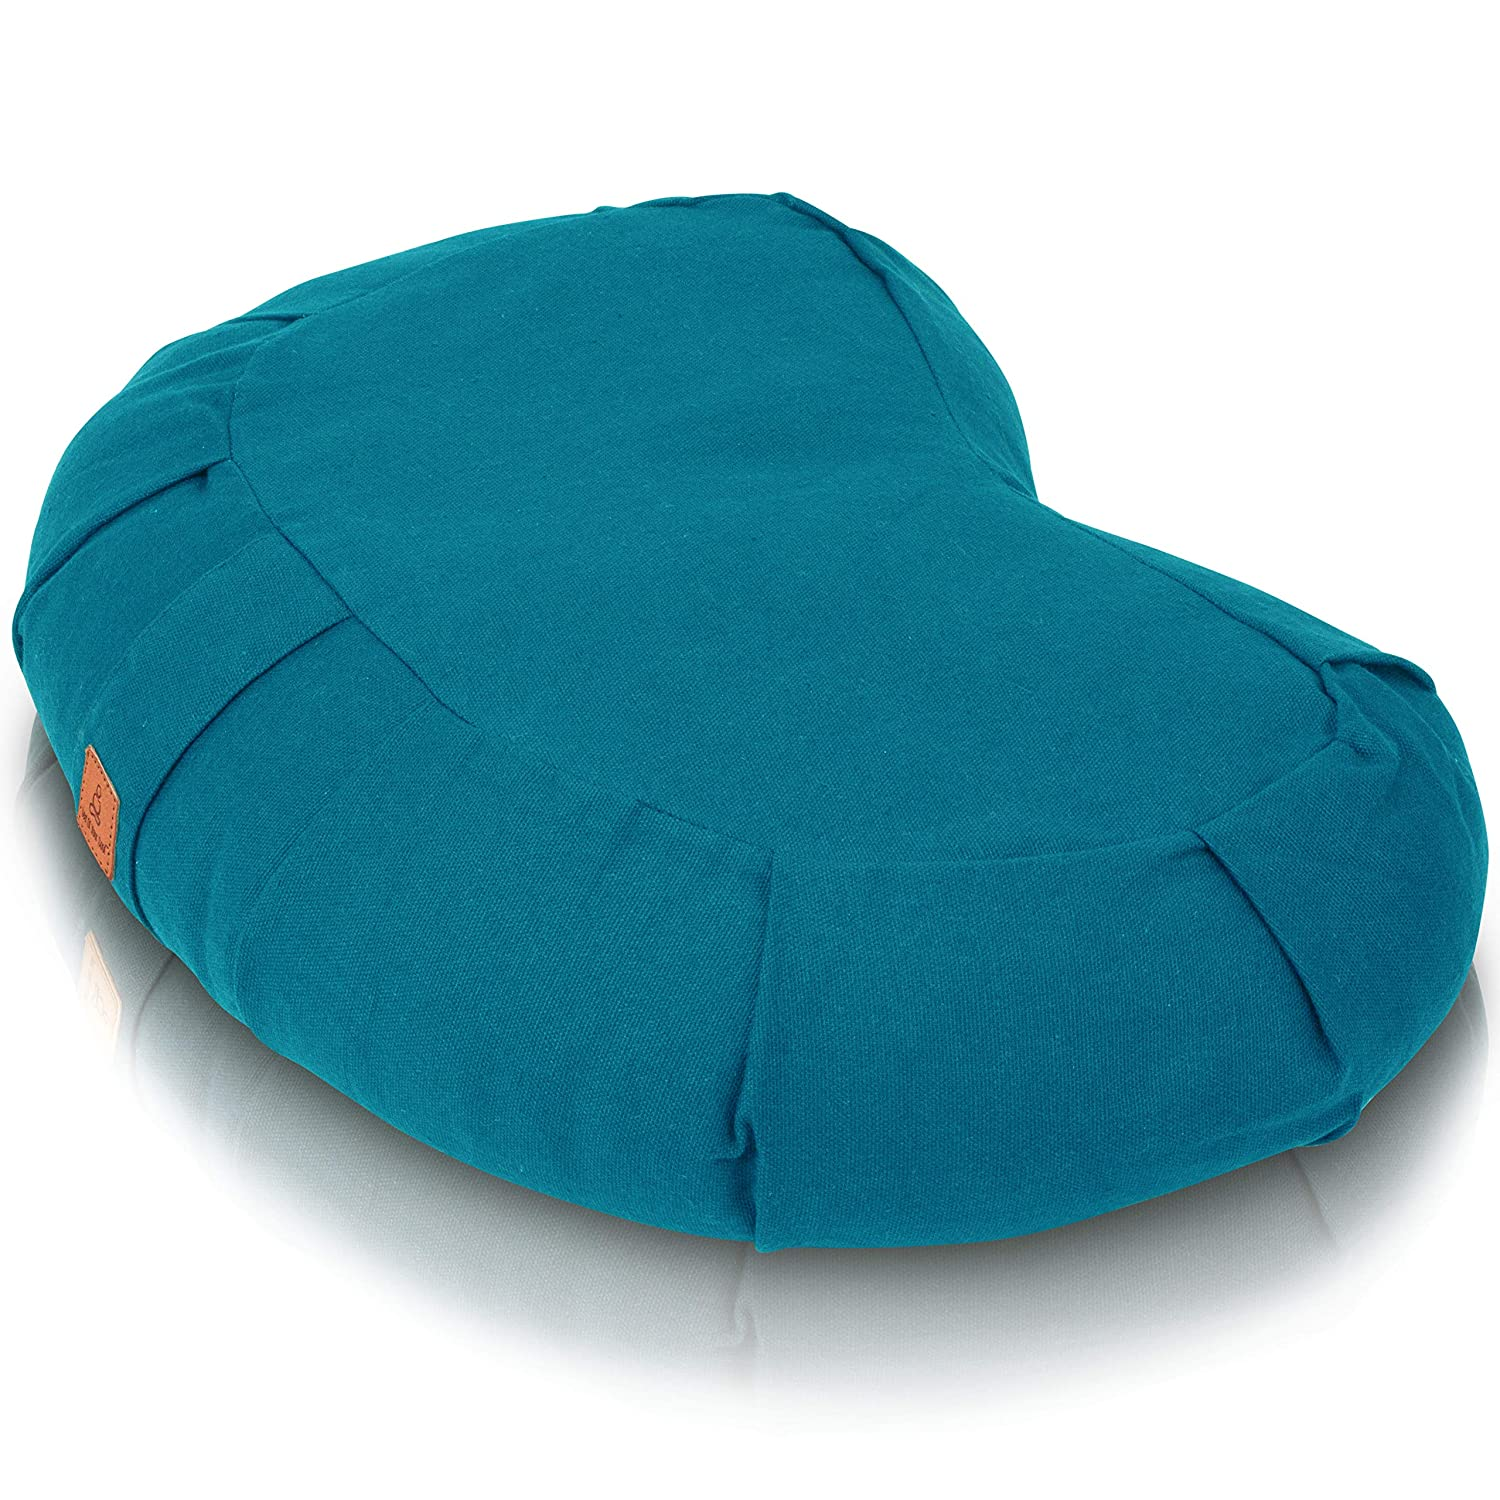 Top 5 Best Meditation Cushion Reviews in 2020 2